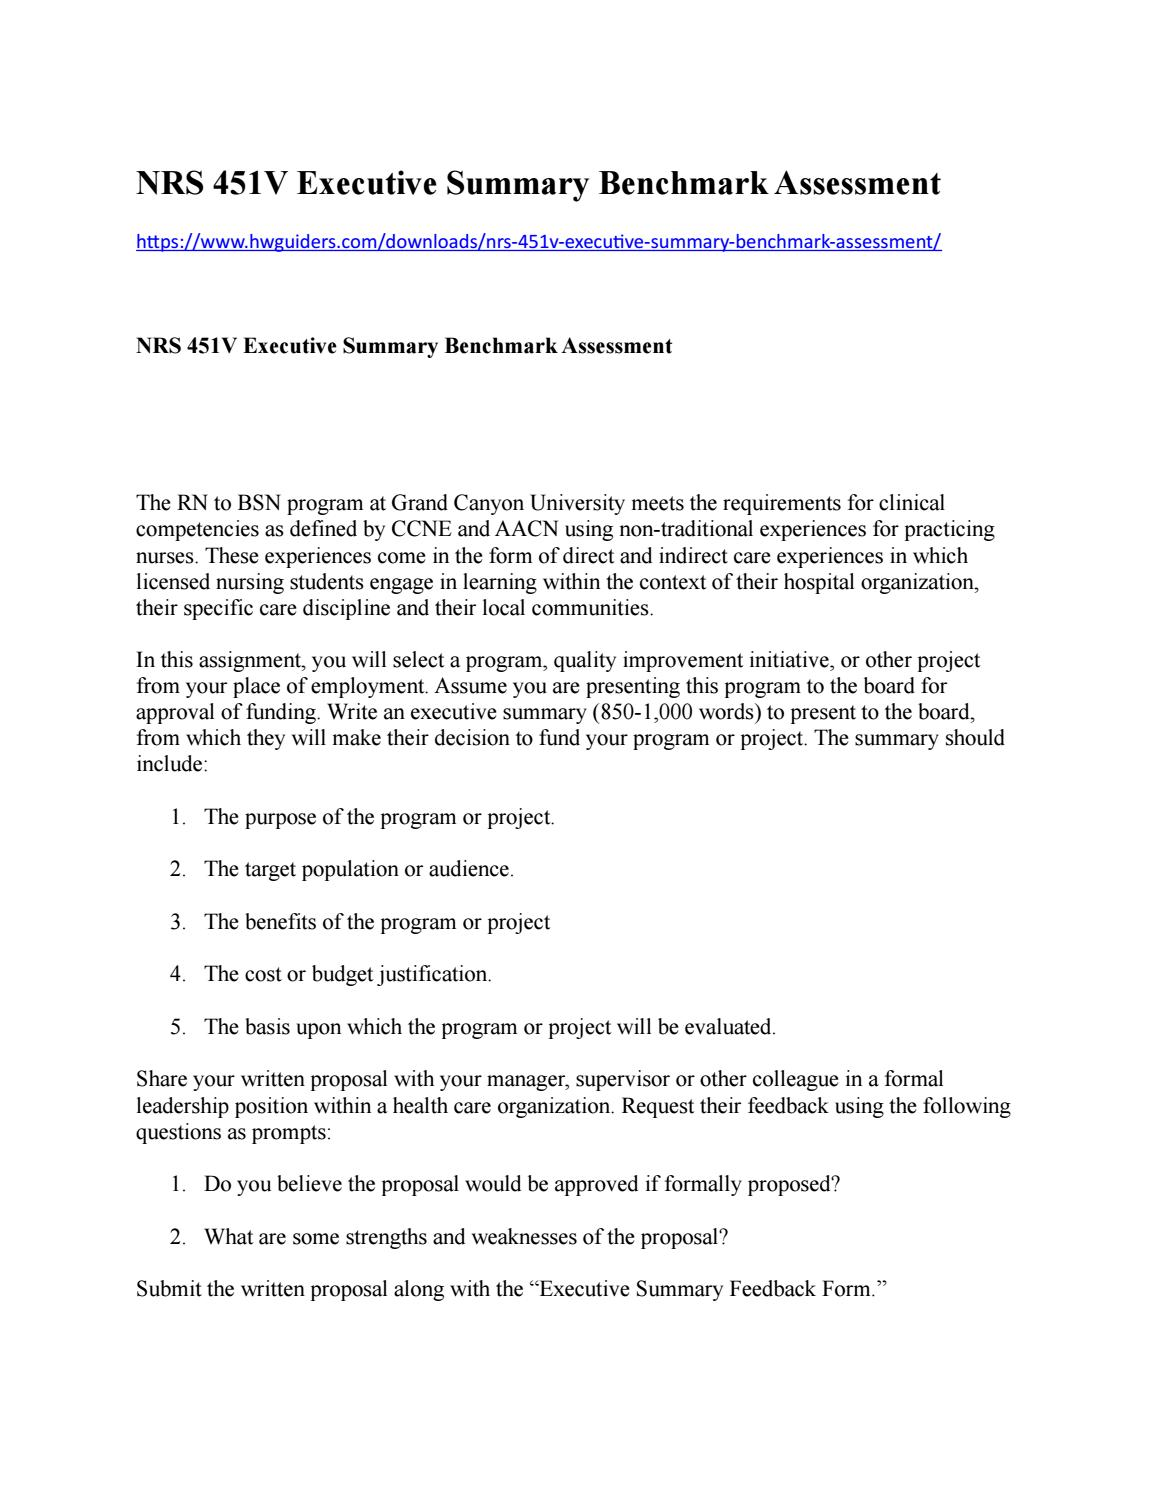 "executive summary benchmark assessment Executive summary (benchmark assessment ) essay sample hospital acquired pressure ulcers (hapus) prevention ""hospital-acquired pressure ulcers were shown to be an important risk factor associated with mortality,"" per dr courtney lyder, of the ucla school of nursing."